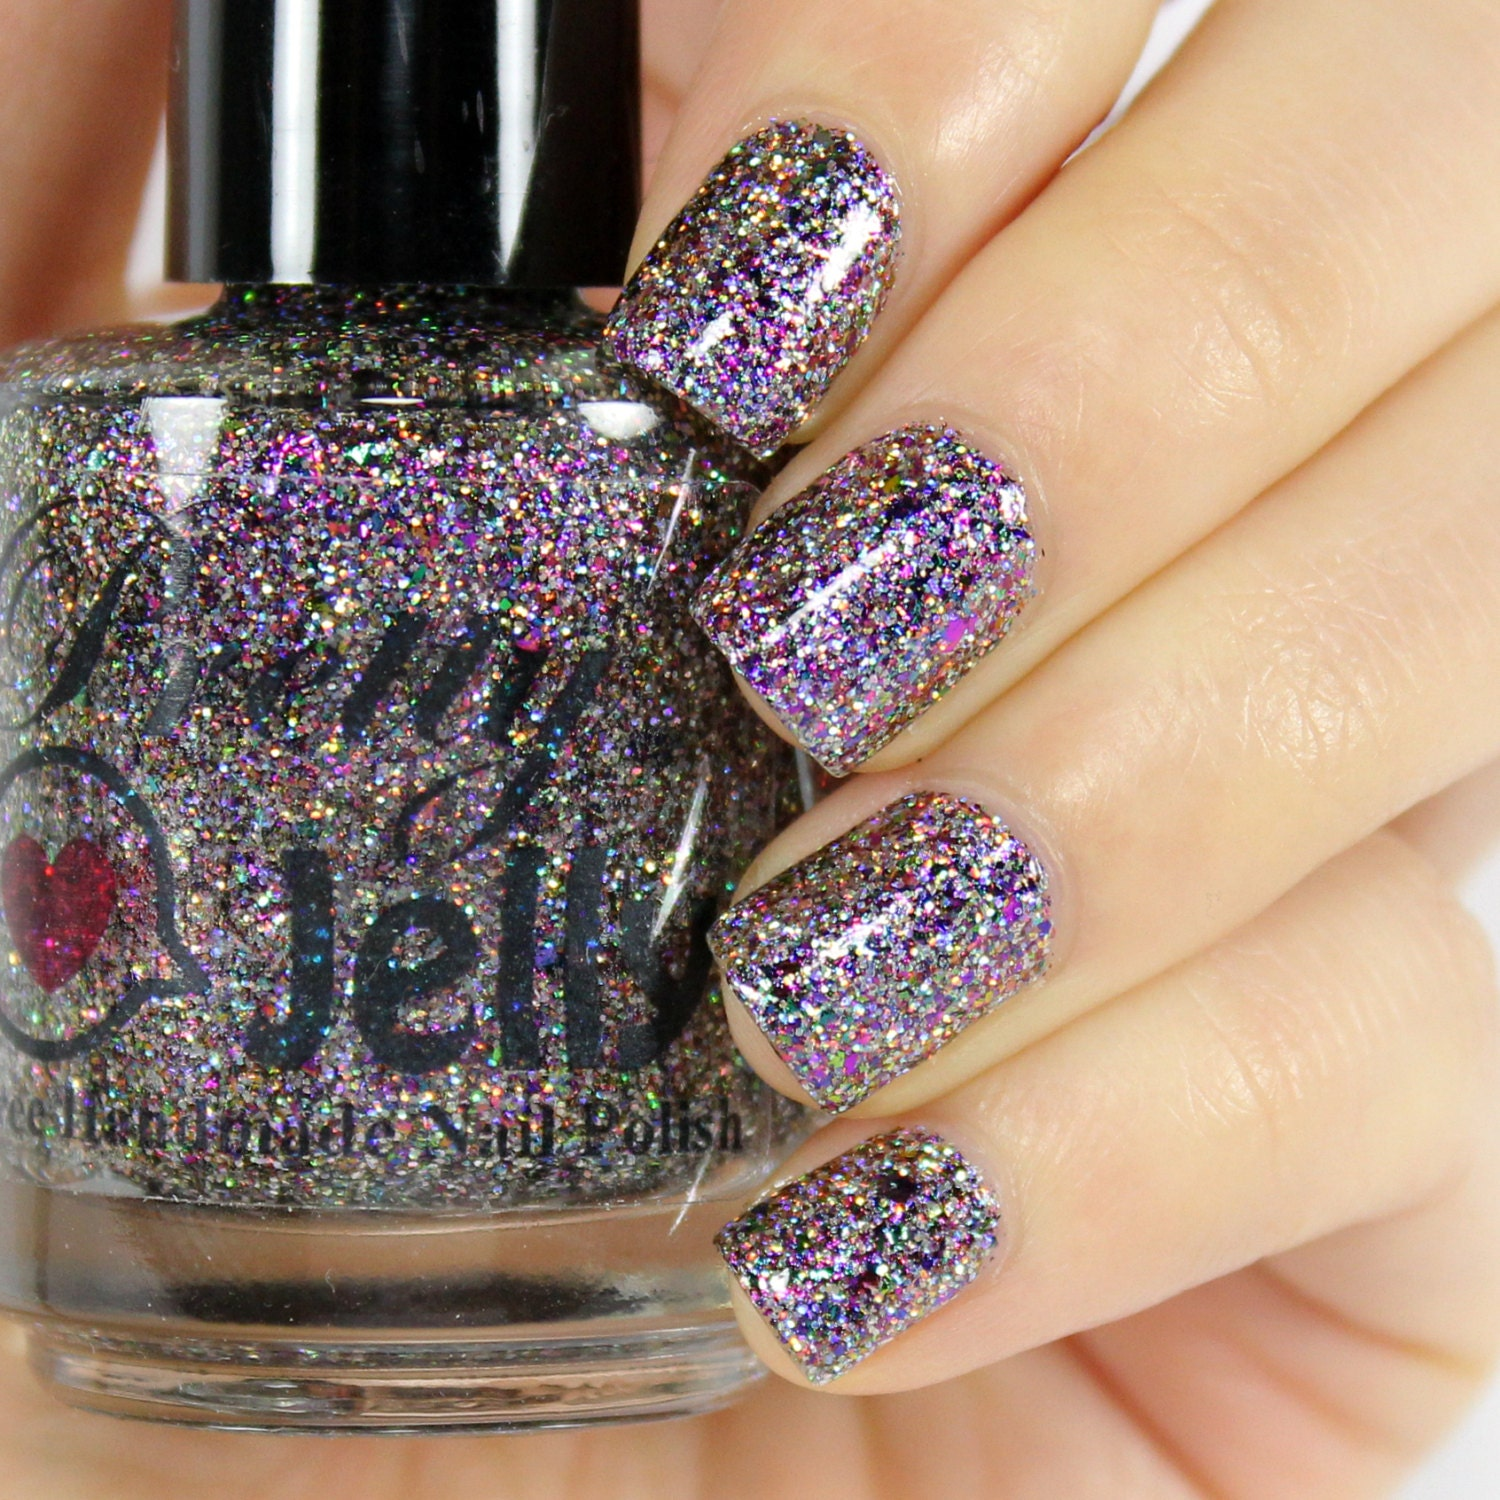 Glitter Nail Polish Rainbow: Glitter Nail Polish Silver Holographic Indie Lacquer